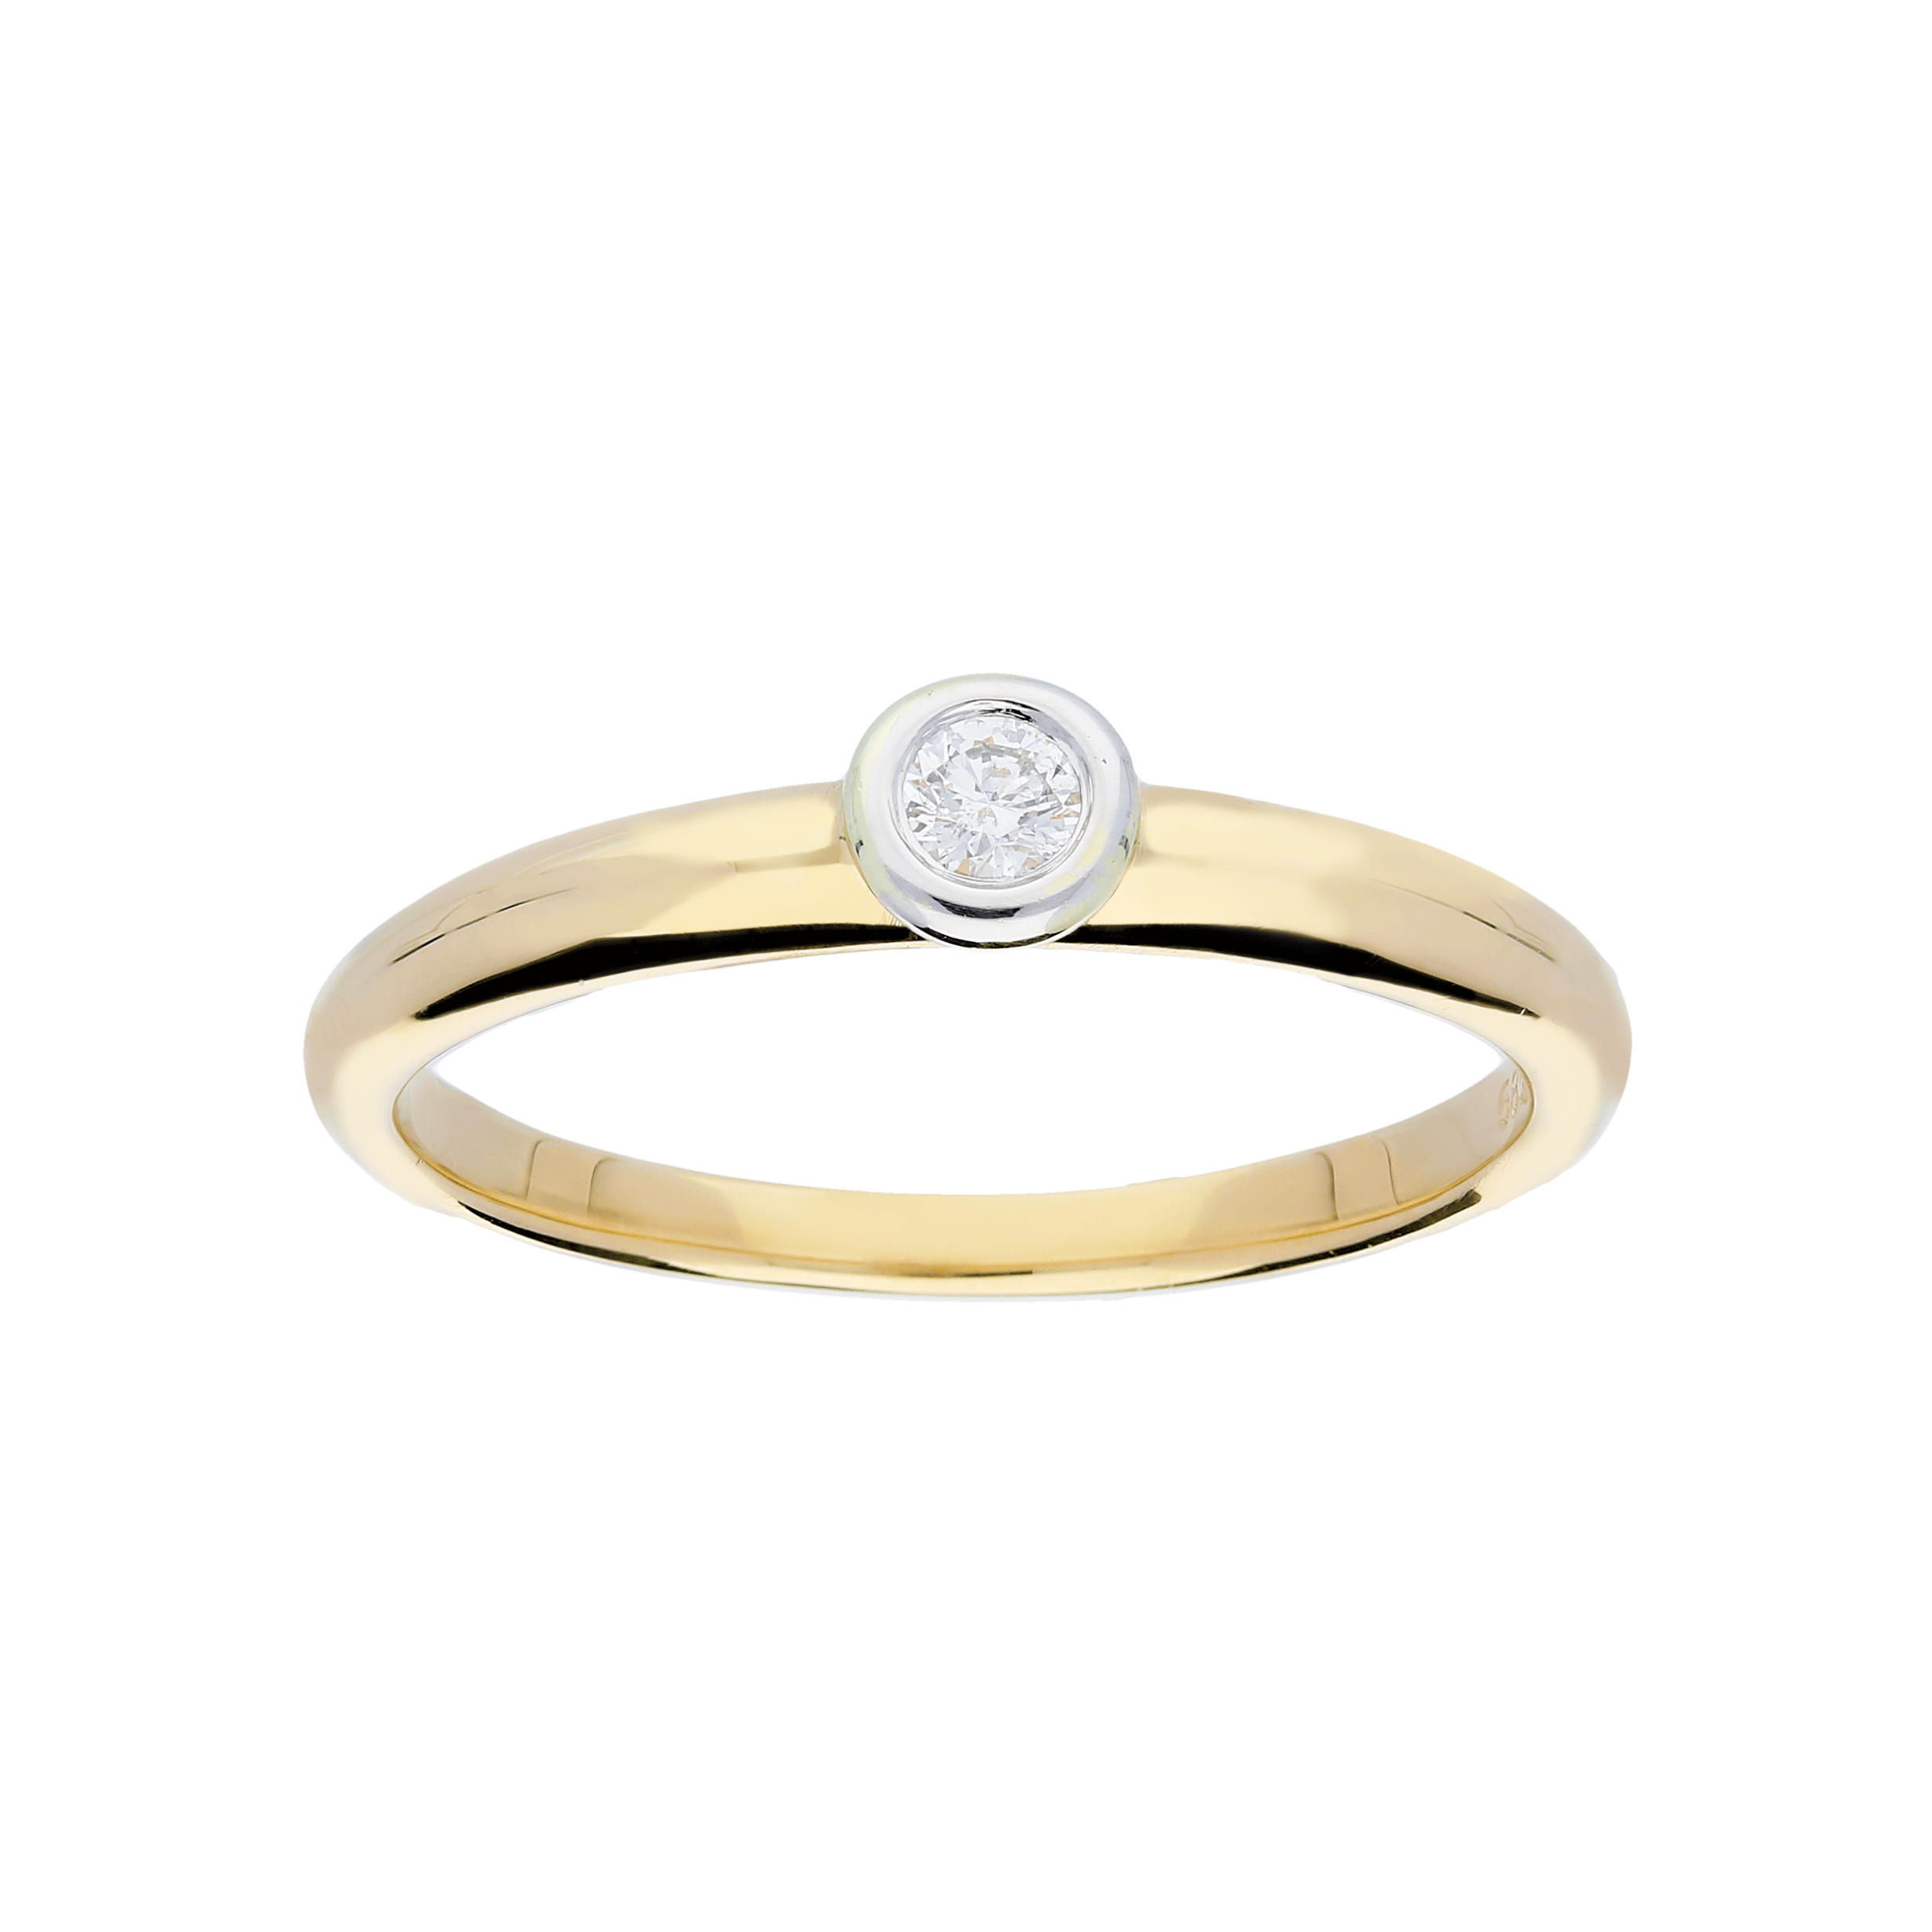 Glow Gouden Ring Bicolor Mat Glanzend Diamant 1 0.07ct G si 214.5209.50